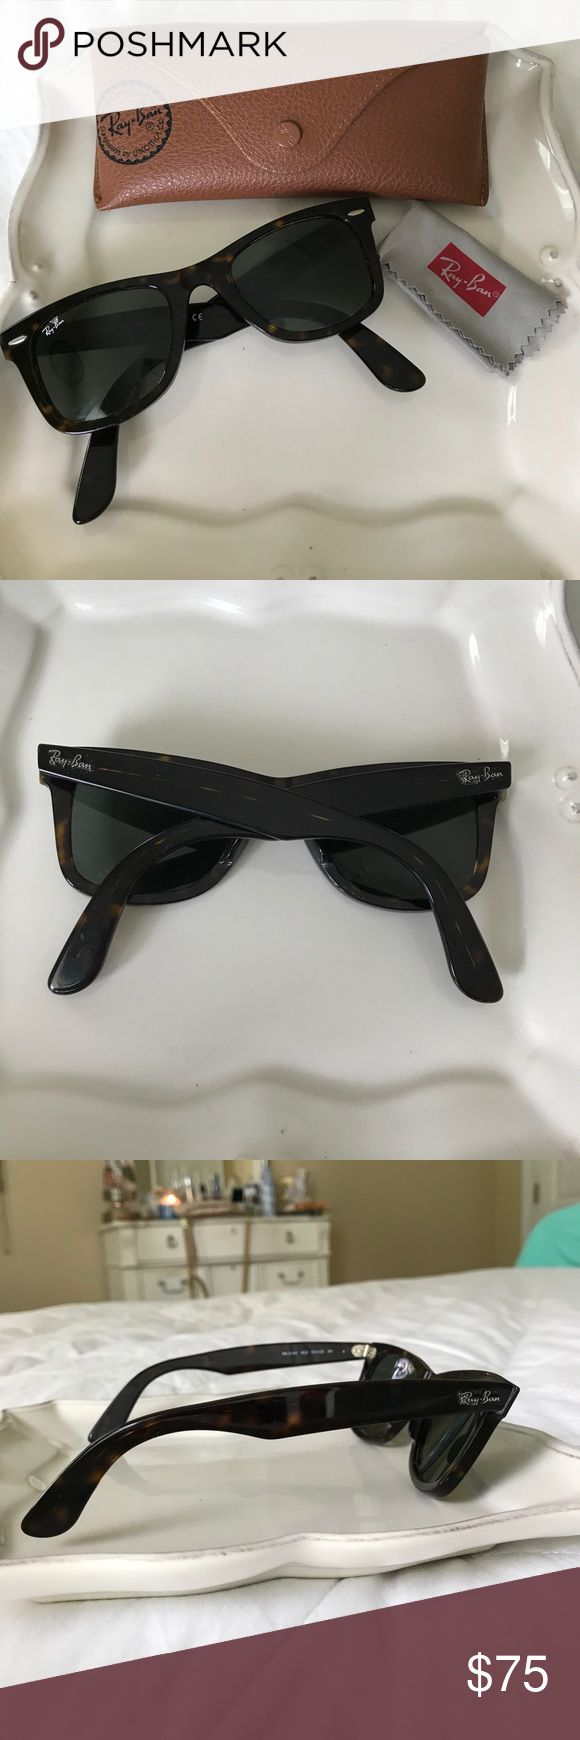 Ray Bans Wayfarer Ray Bans Wayfarer in tortoise shell color. They look brand new and have only been worn a few times! Includes case and lens cloth. Ray-Ban Accessories Sunglasses